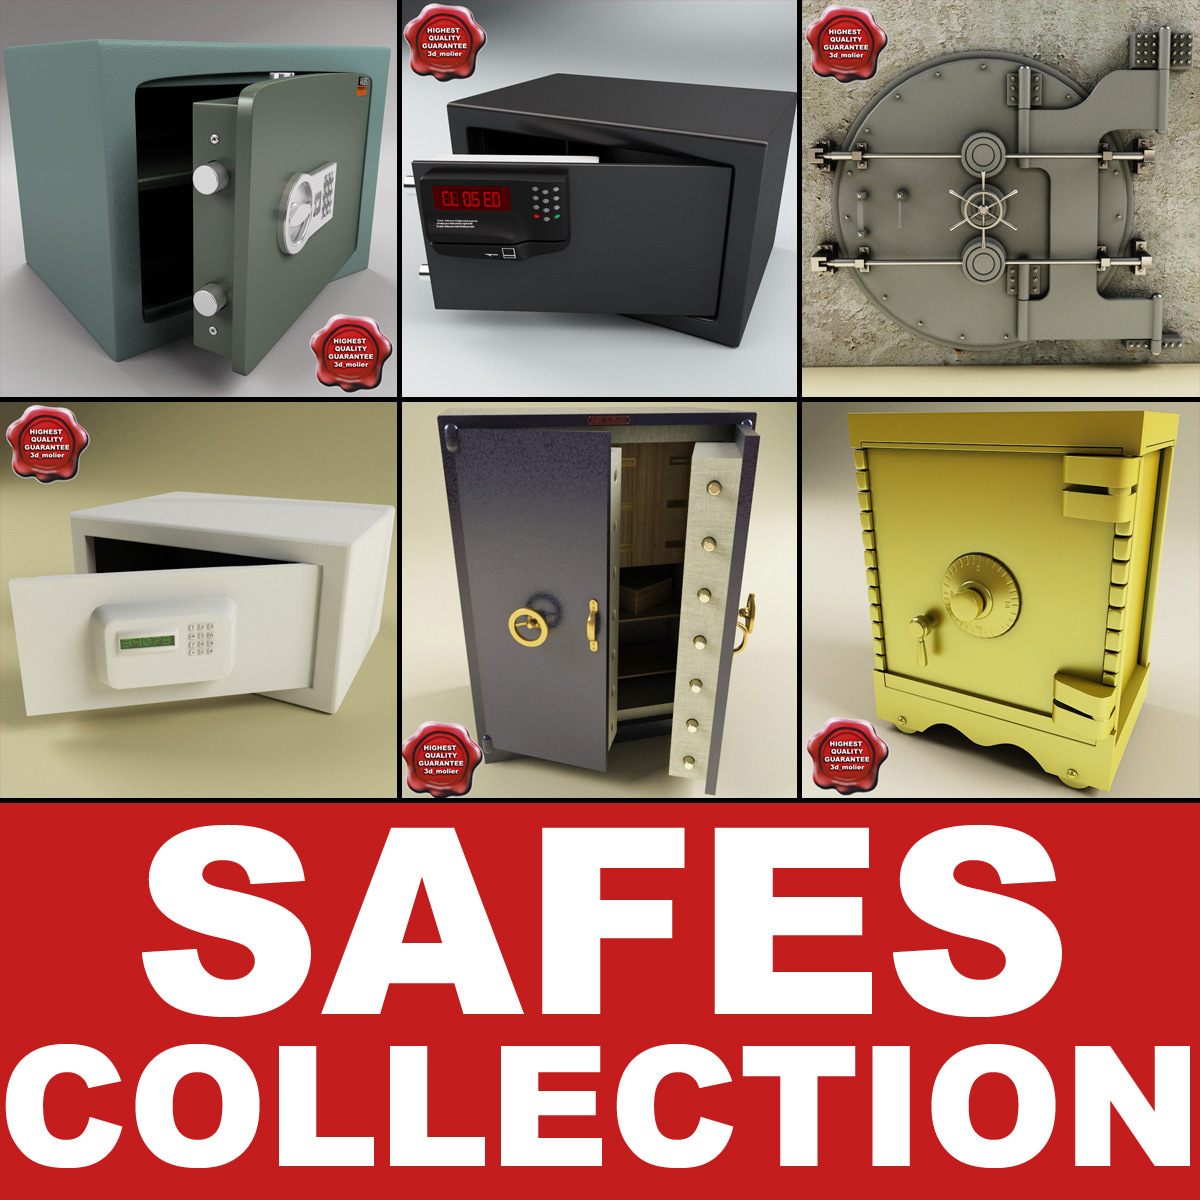 Safes_Collection_V3_000.jpg